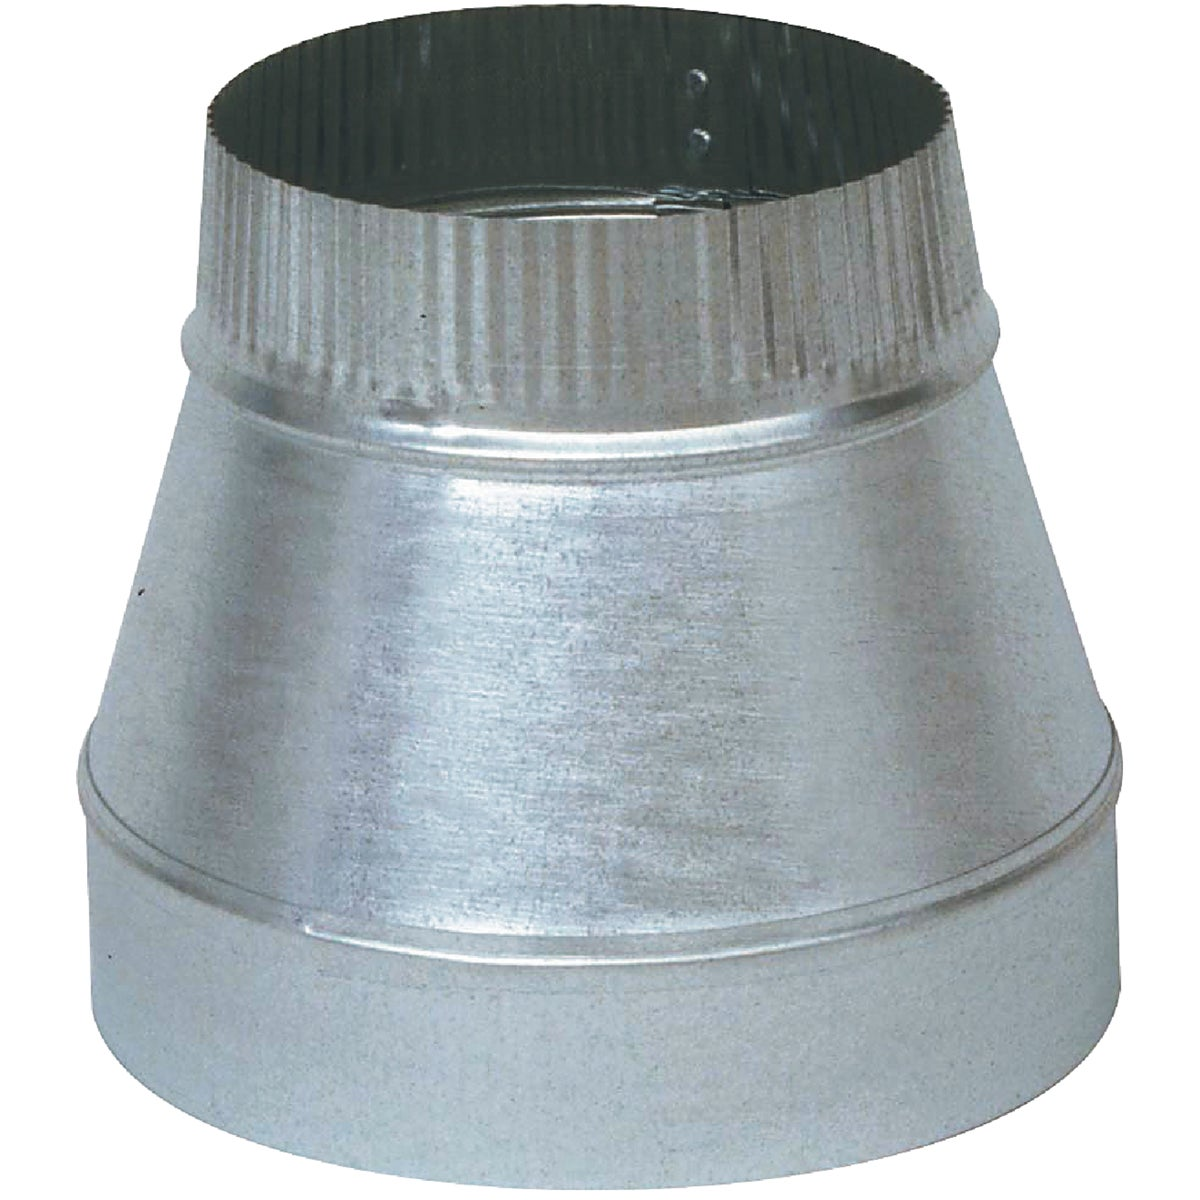 7X6 GALV REDUCER - GV0816 by Imperial Mfg Group